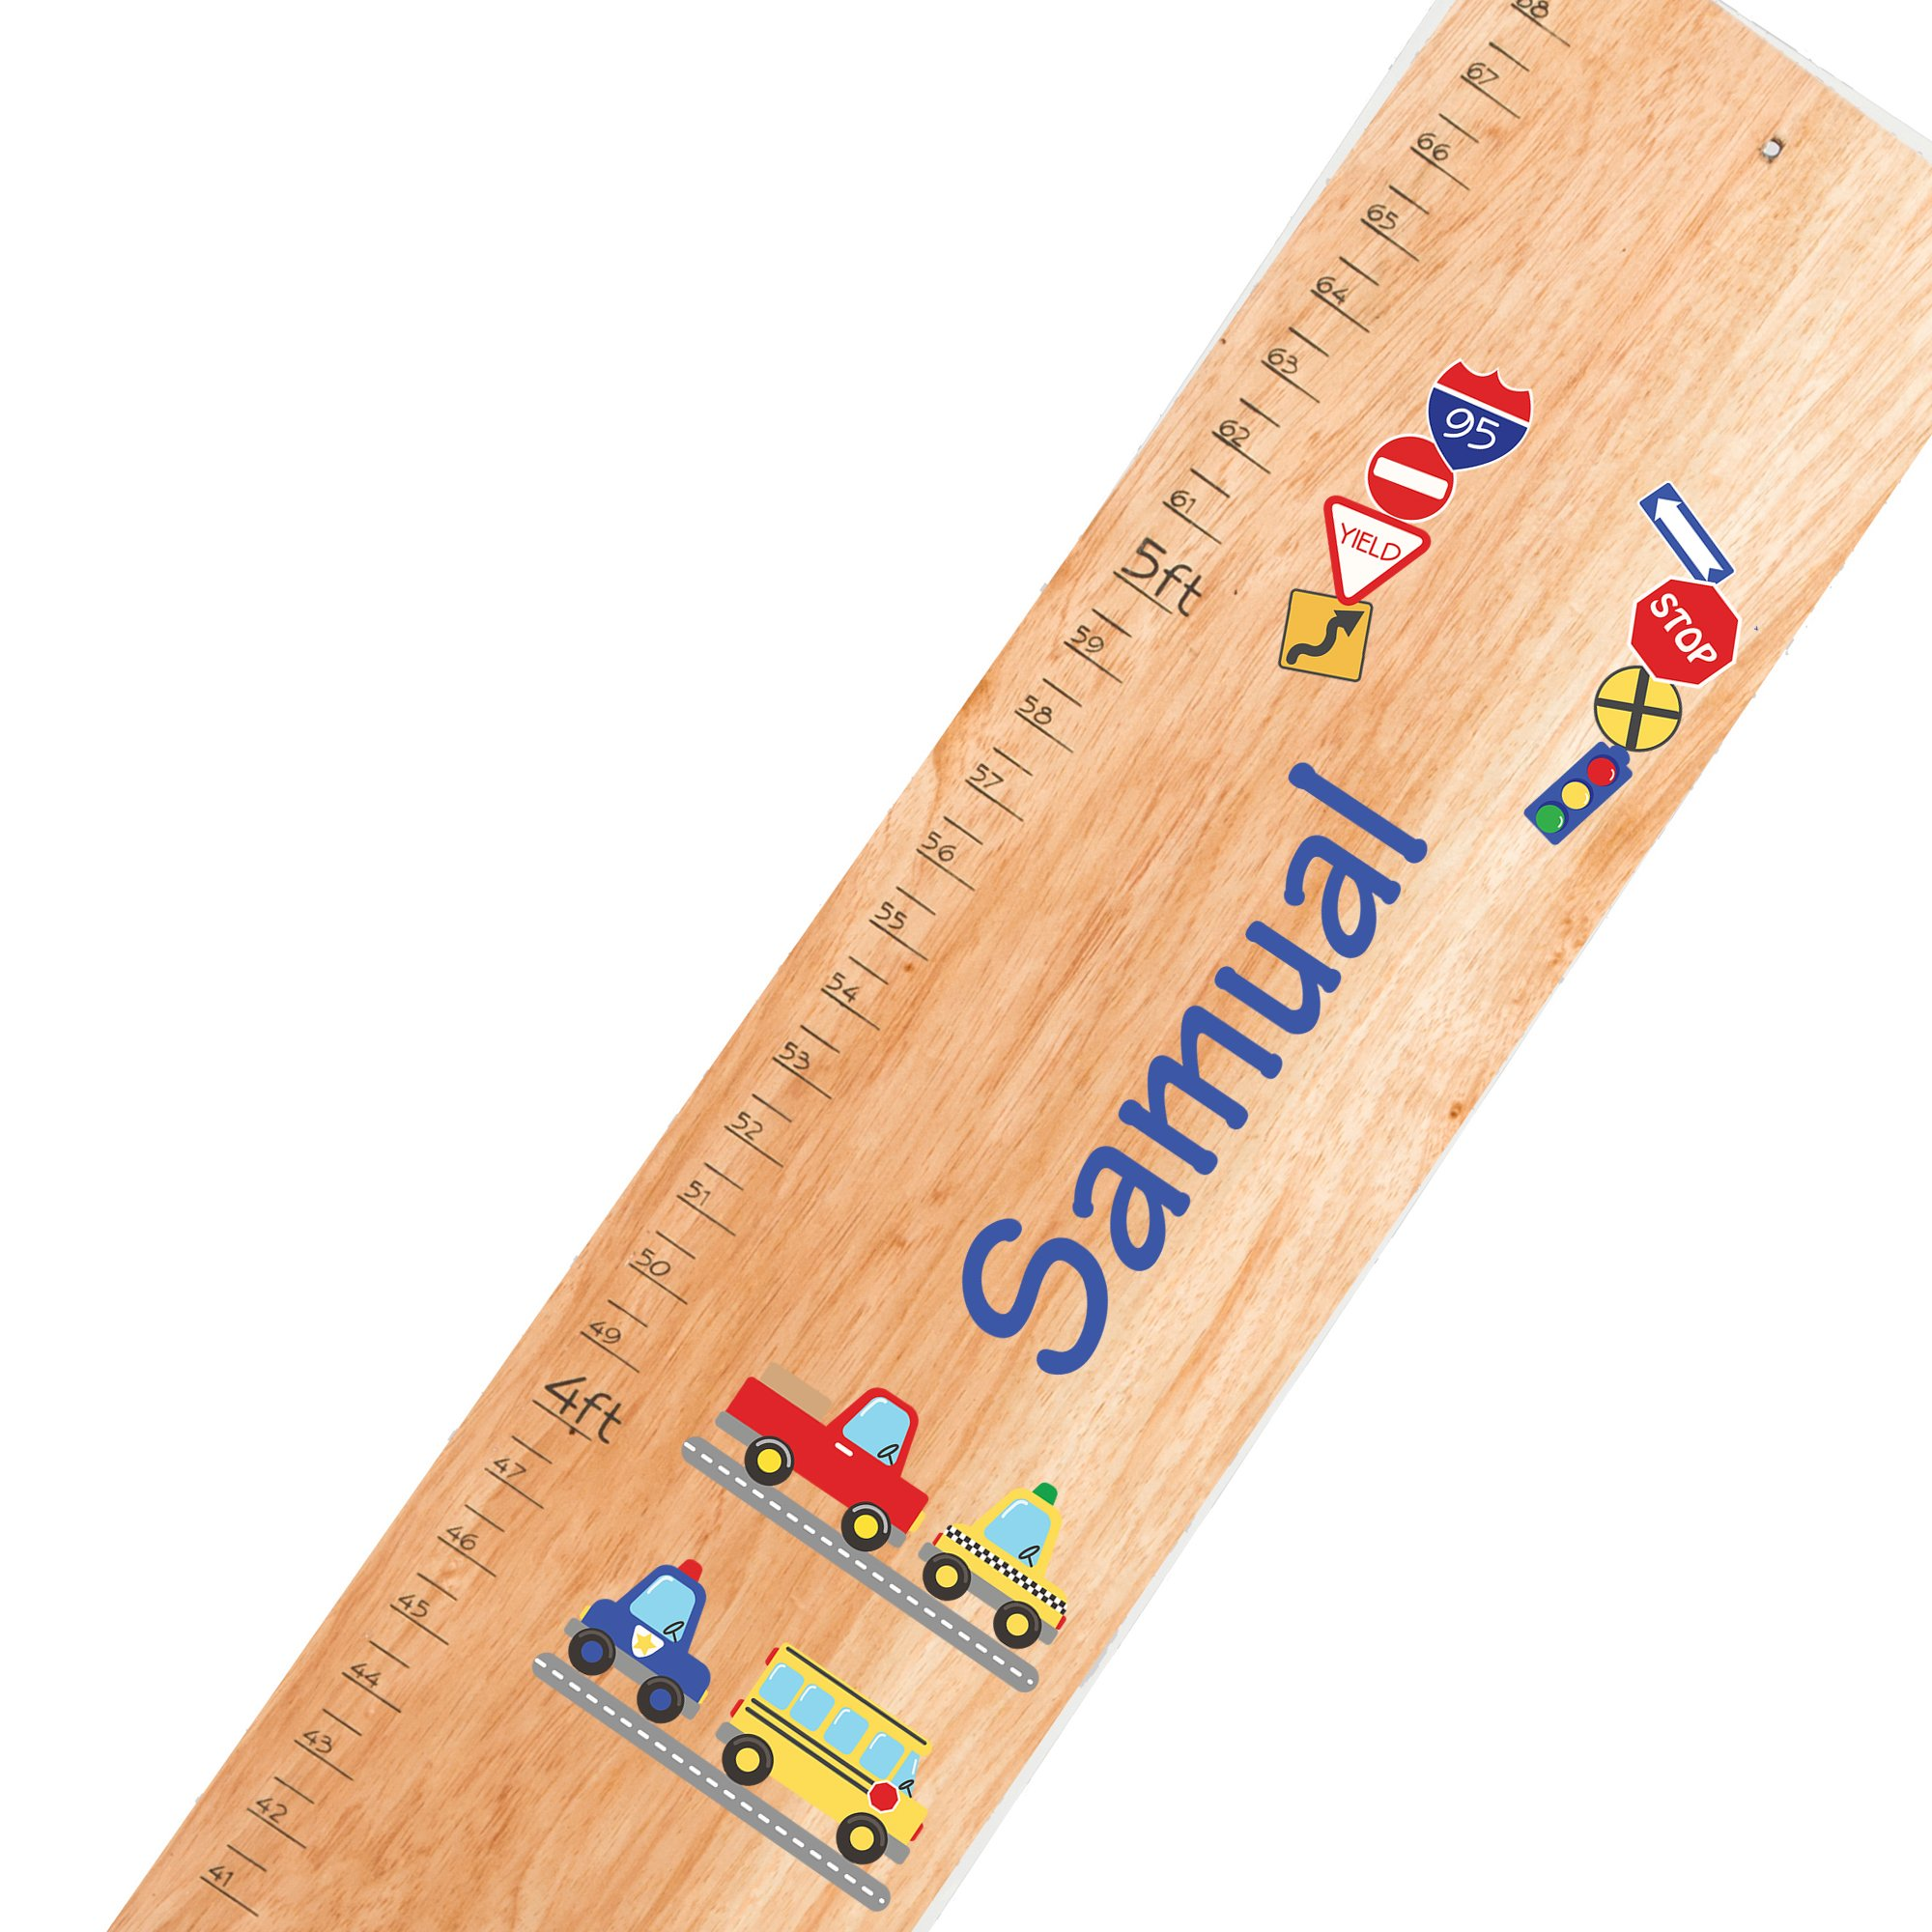 Personalized natural Cars & Trucks childrens wooden growth chart